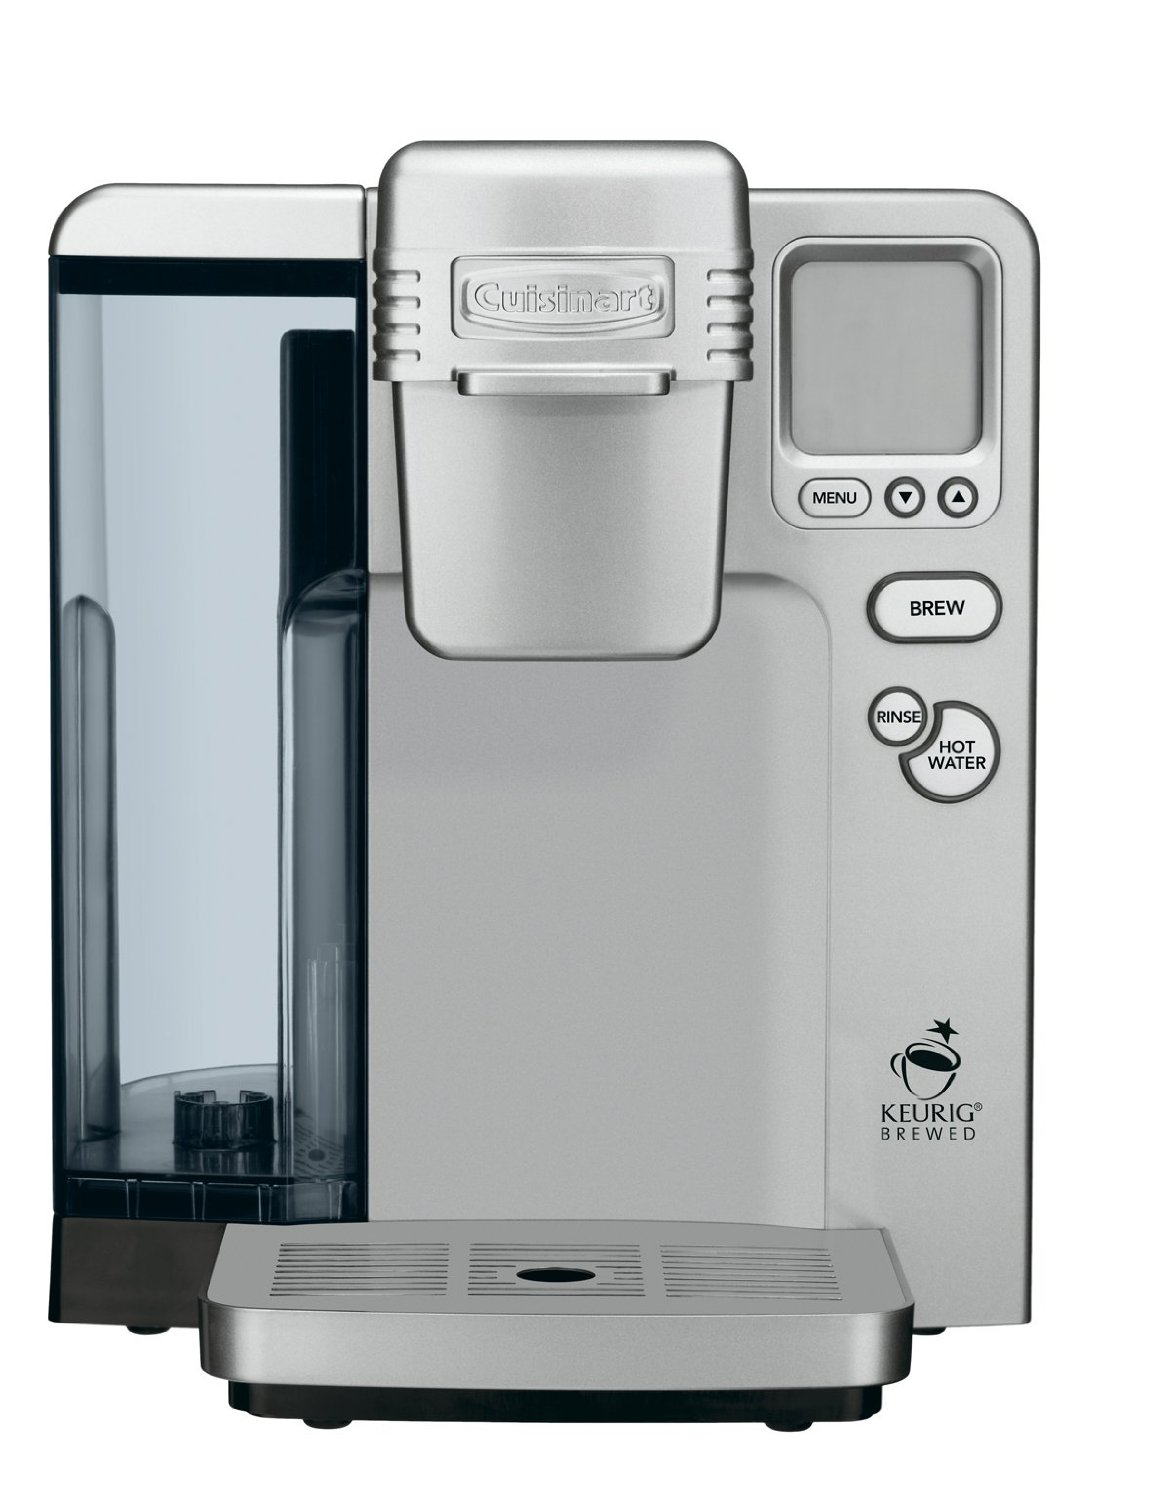 Review Of Cuisinart Ss 700 Single Serve Coffee Maker